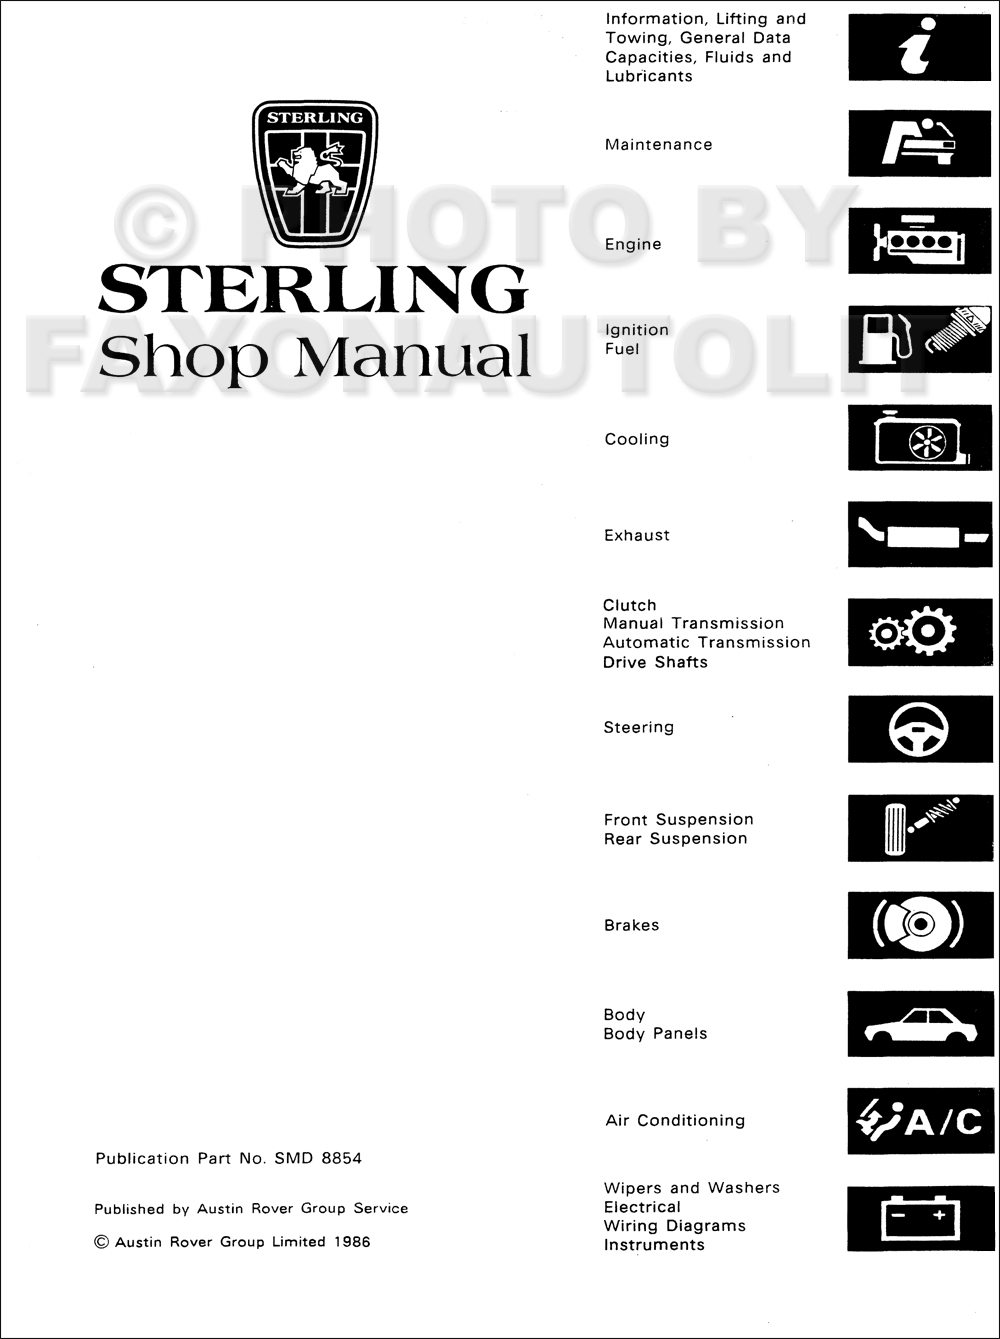 1987-1988 Sterling 825 Reprint Repair Shop Manual